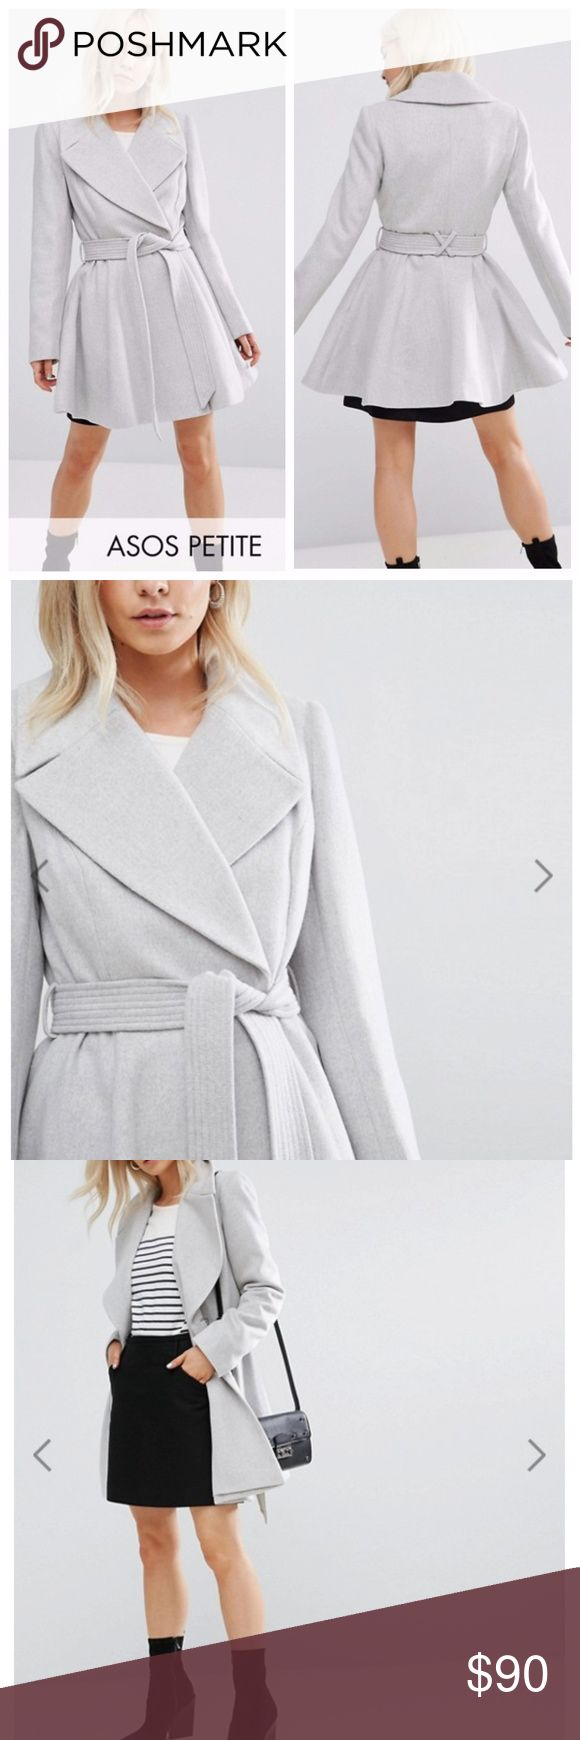 """ASOS PETITE Belted Flare Coat Petite coat by ASOS PETITE Oversized collar Collared coat Skater coat Wool-mix woven fabric Oversized notch lapels Self-tie waist belt Fit-and-flare design Regular fit - true to size Dry clean 45% Polyester, 34% Acrylic, 12% Wool, 6% Nylon, 3% Viscose Model wears a UK 8/EU 36/US 4 and is 163cm/5'4"""" tall ASOS Petite Jackets & Coats Pea Coats"""